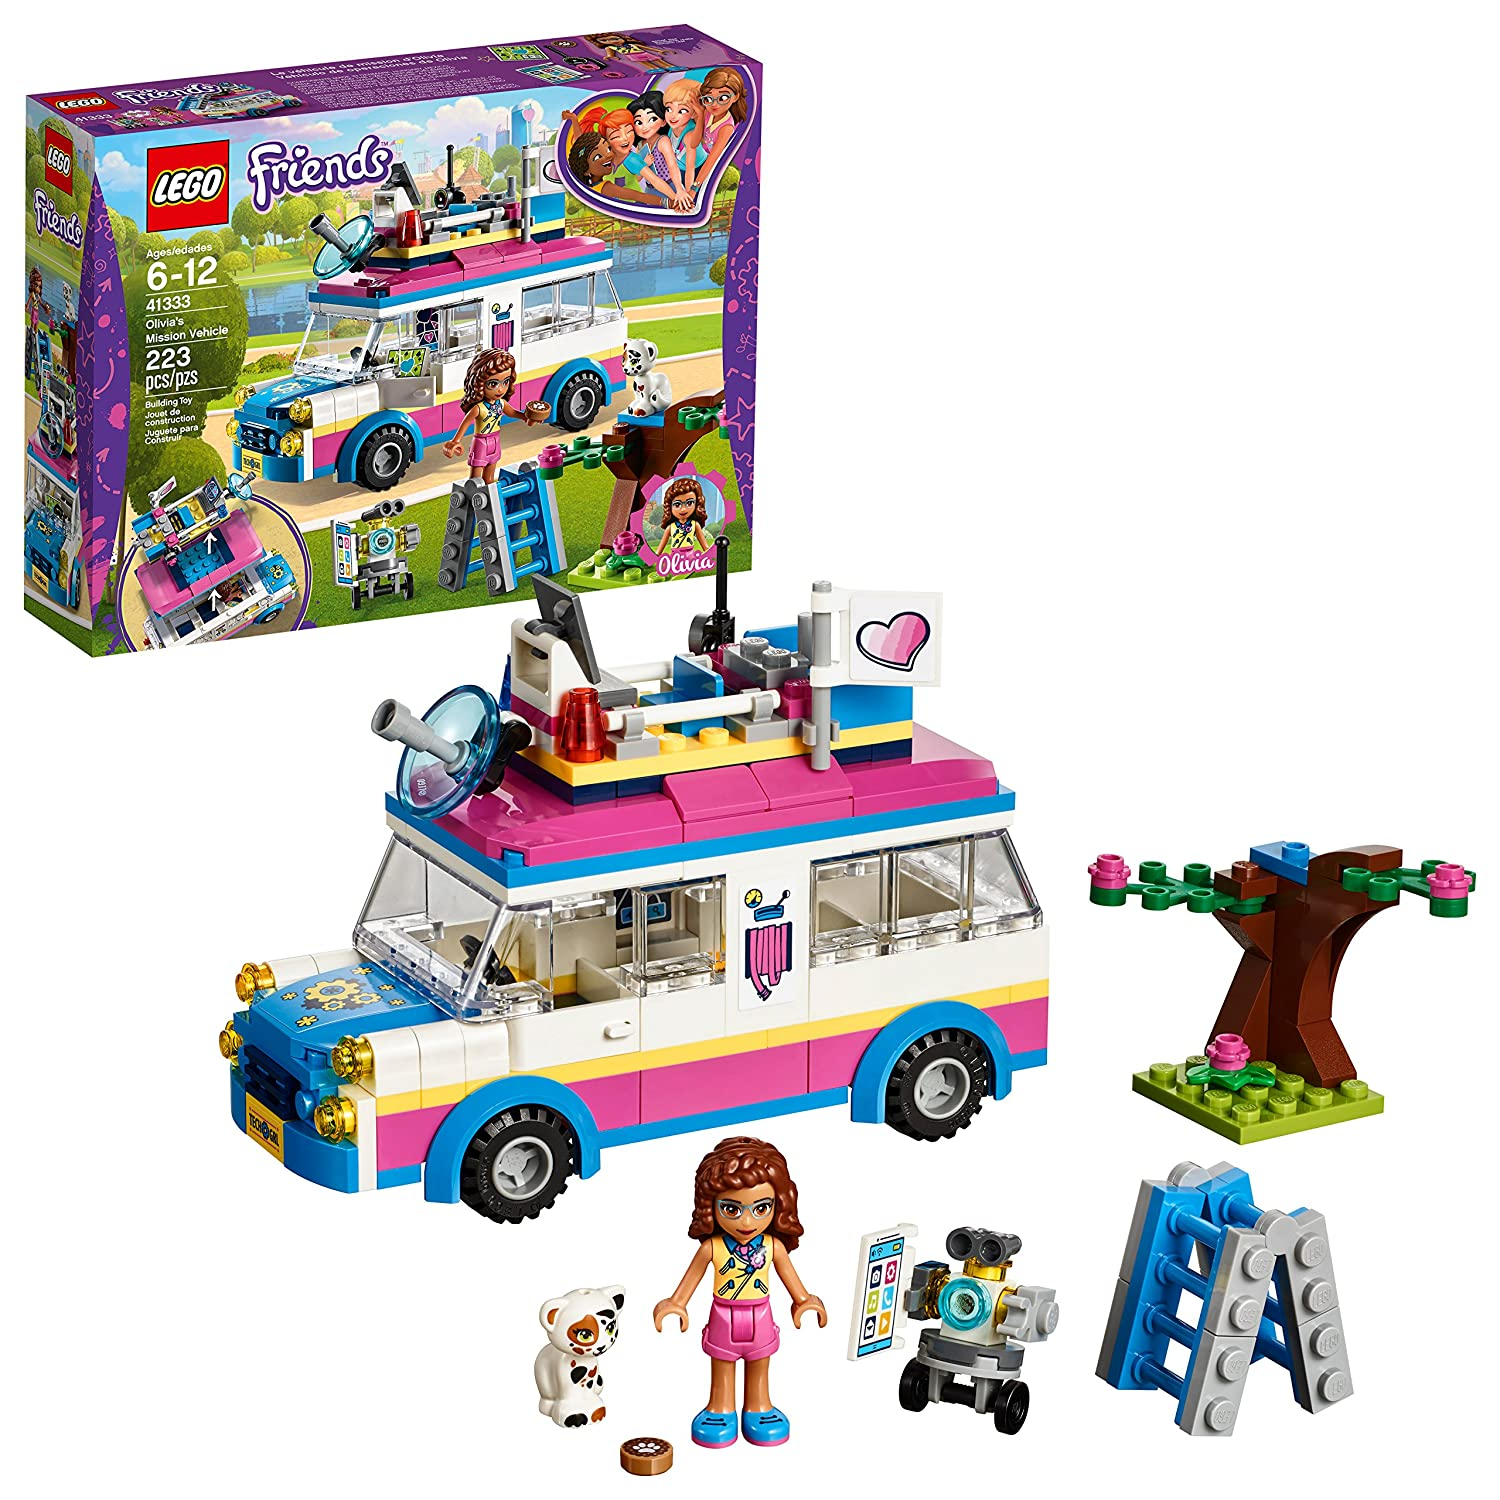 LEGO Friends Olivia's Mission Vehicle 41333 Building Set (223 Pieces)